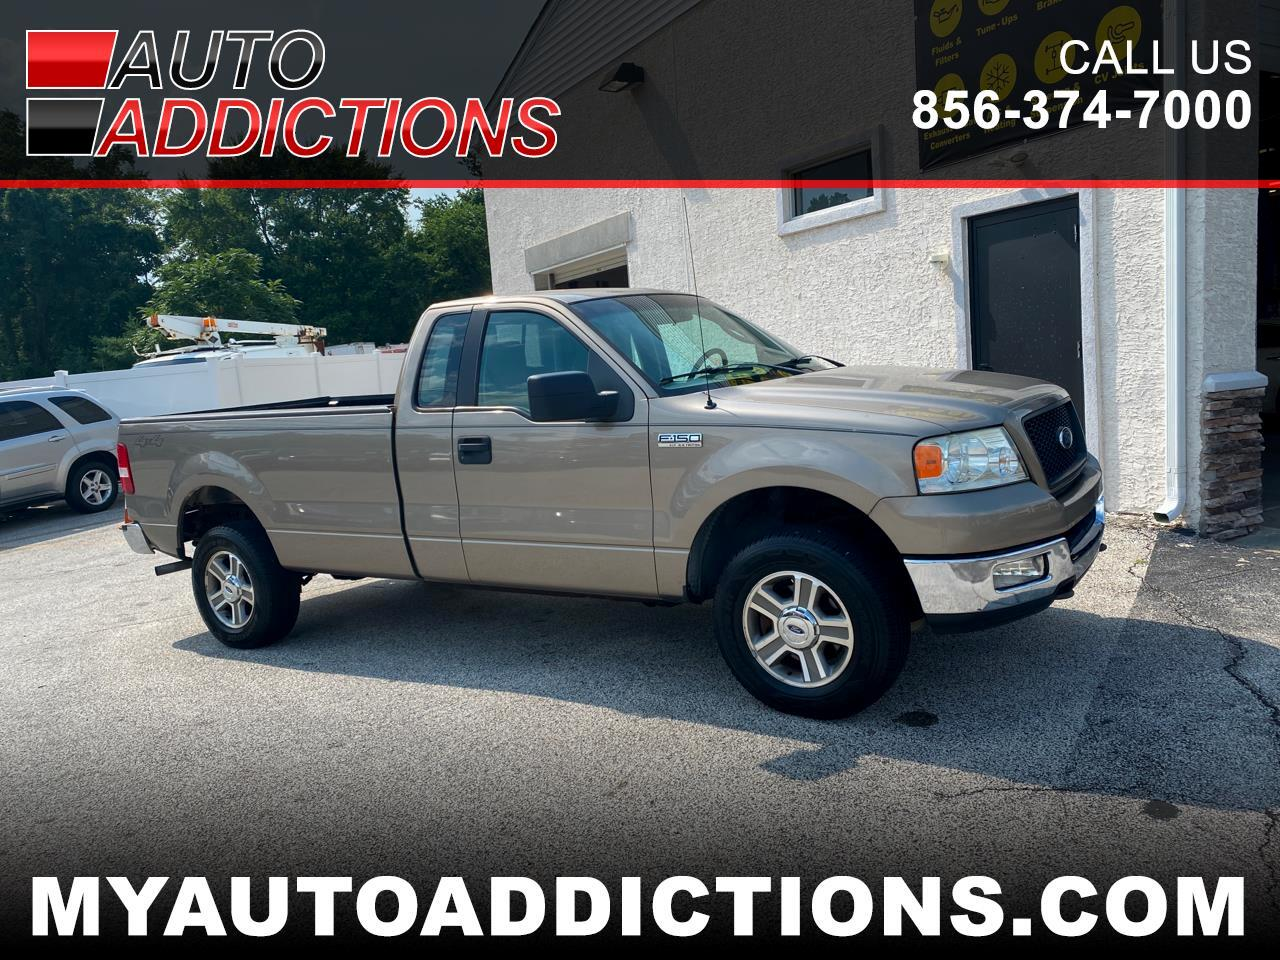 Ford F-150 FX4 4WD 2005